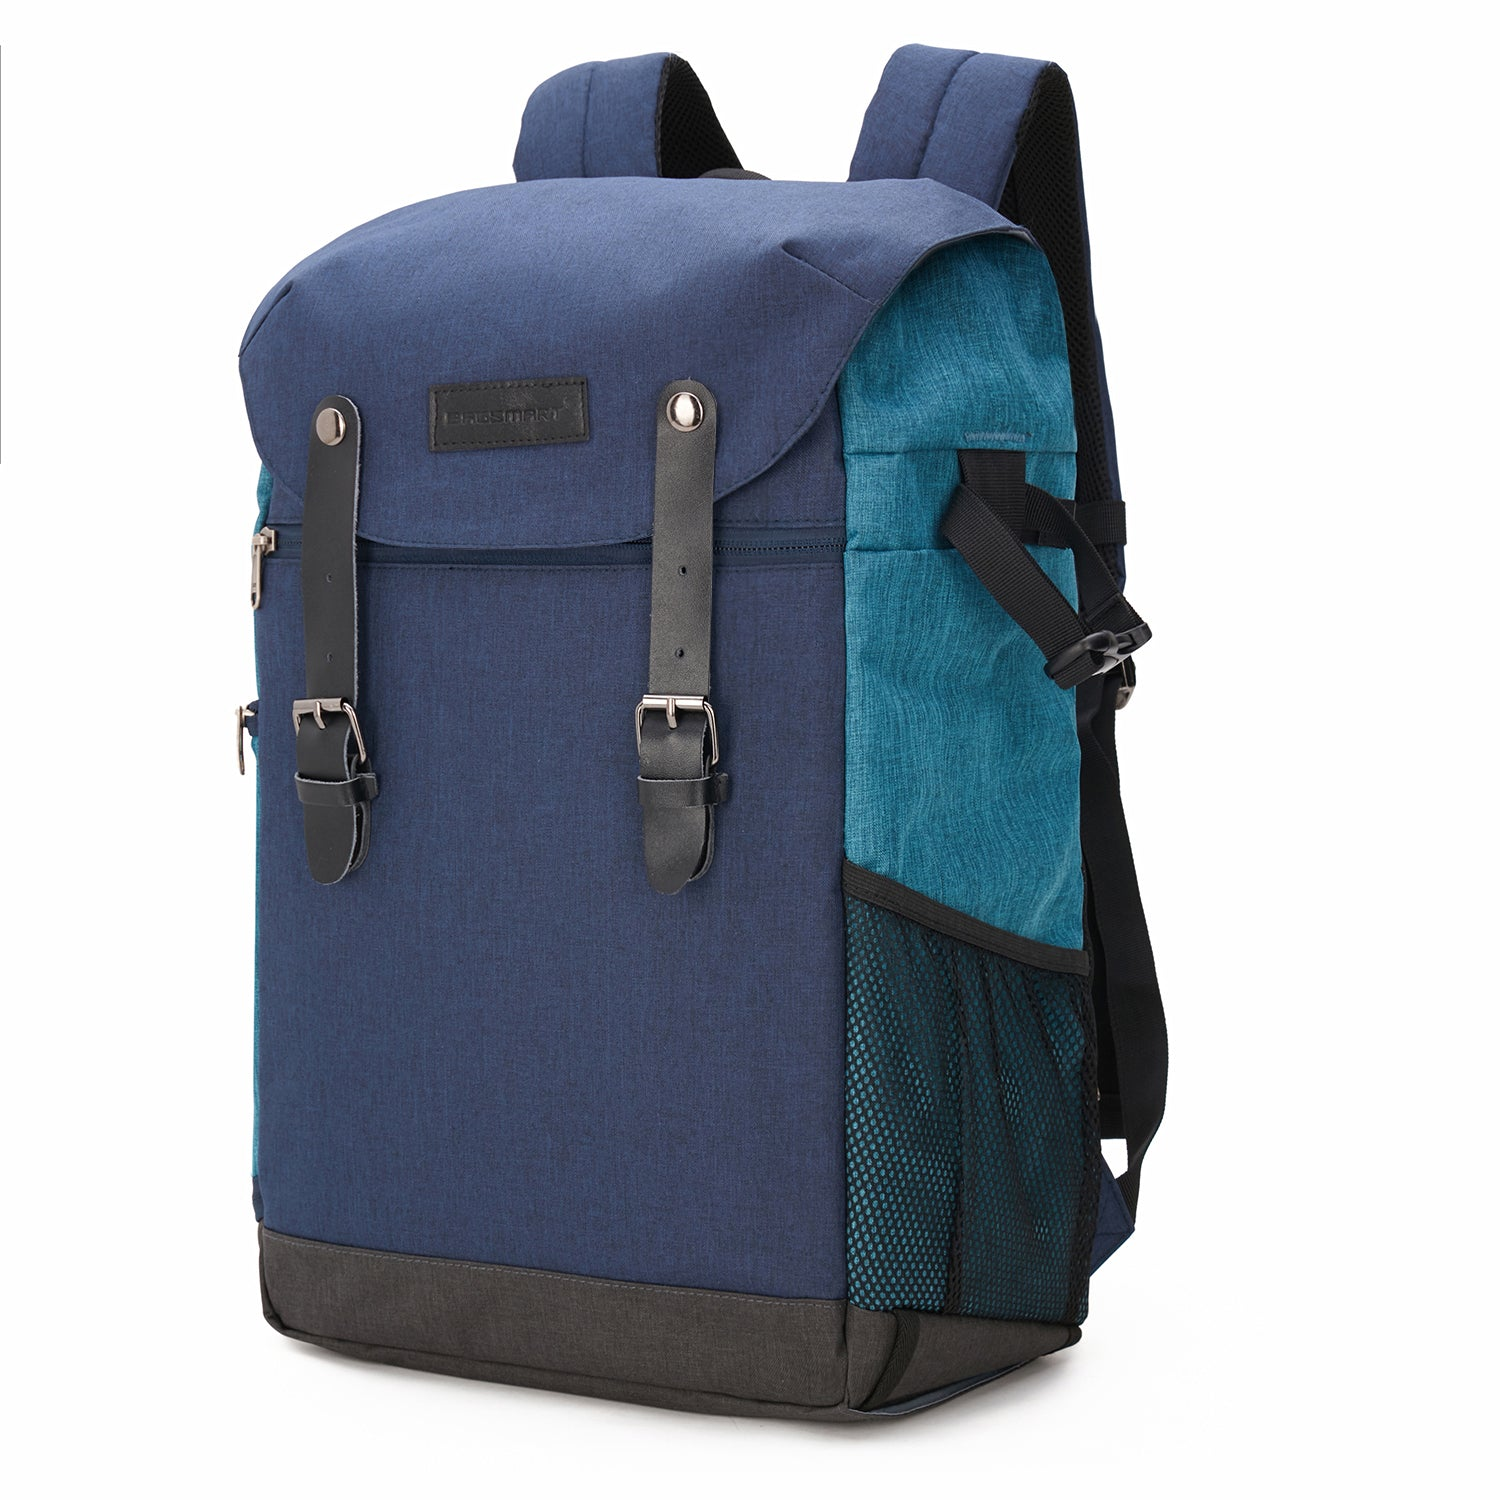 939bb4e93c6 Camera Backpack 15.6 Laptop Compartment with Waterproof Rain Cover ...